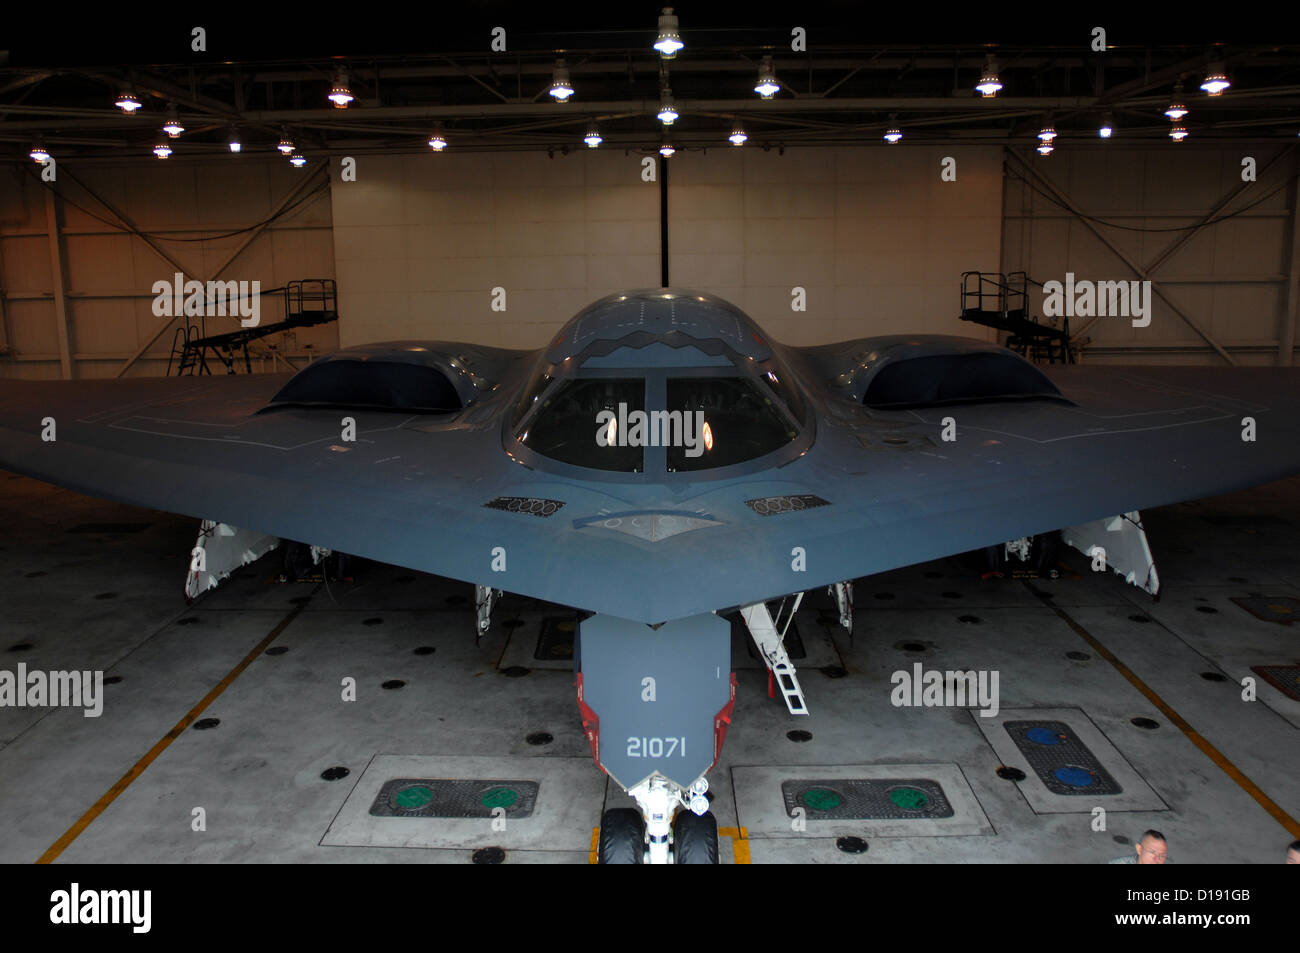 A B-2 Spirit stealth bomber in the maintenance hanger at Whiteman Air Force Base October 30, 2009 in Knob Noster, - Stock Image